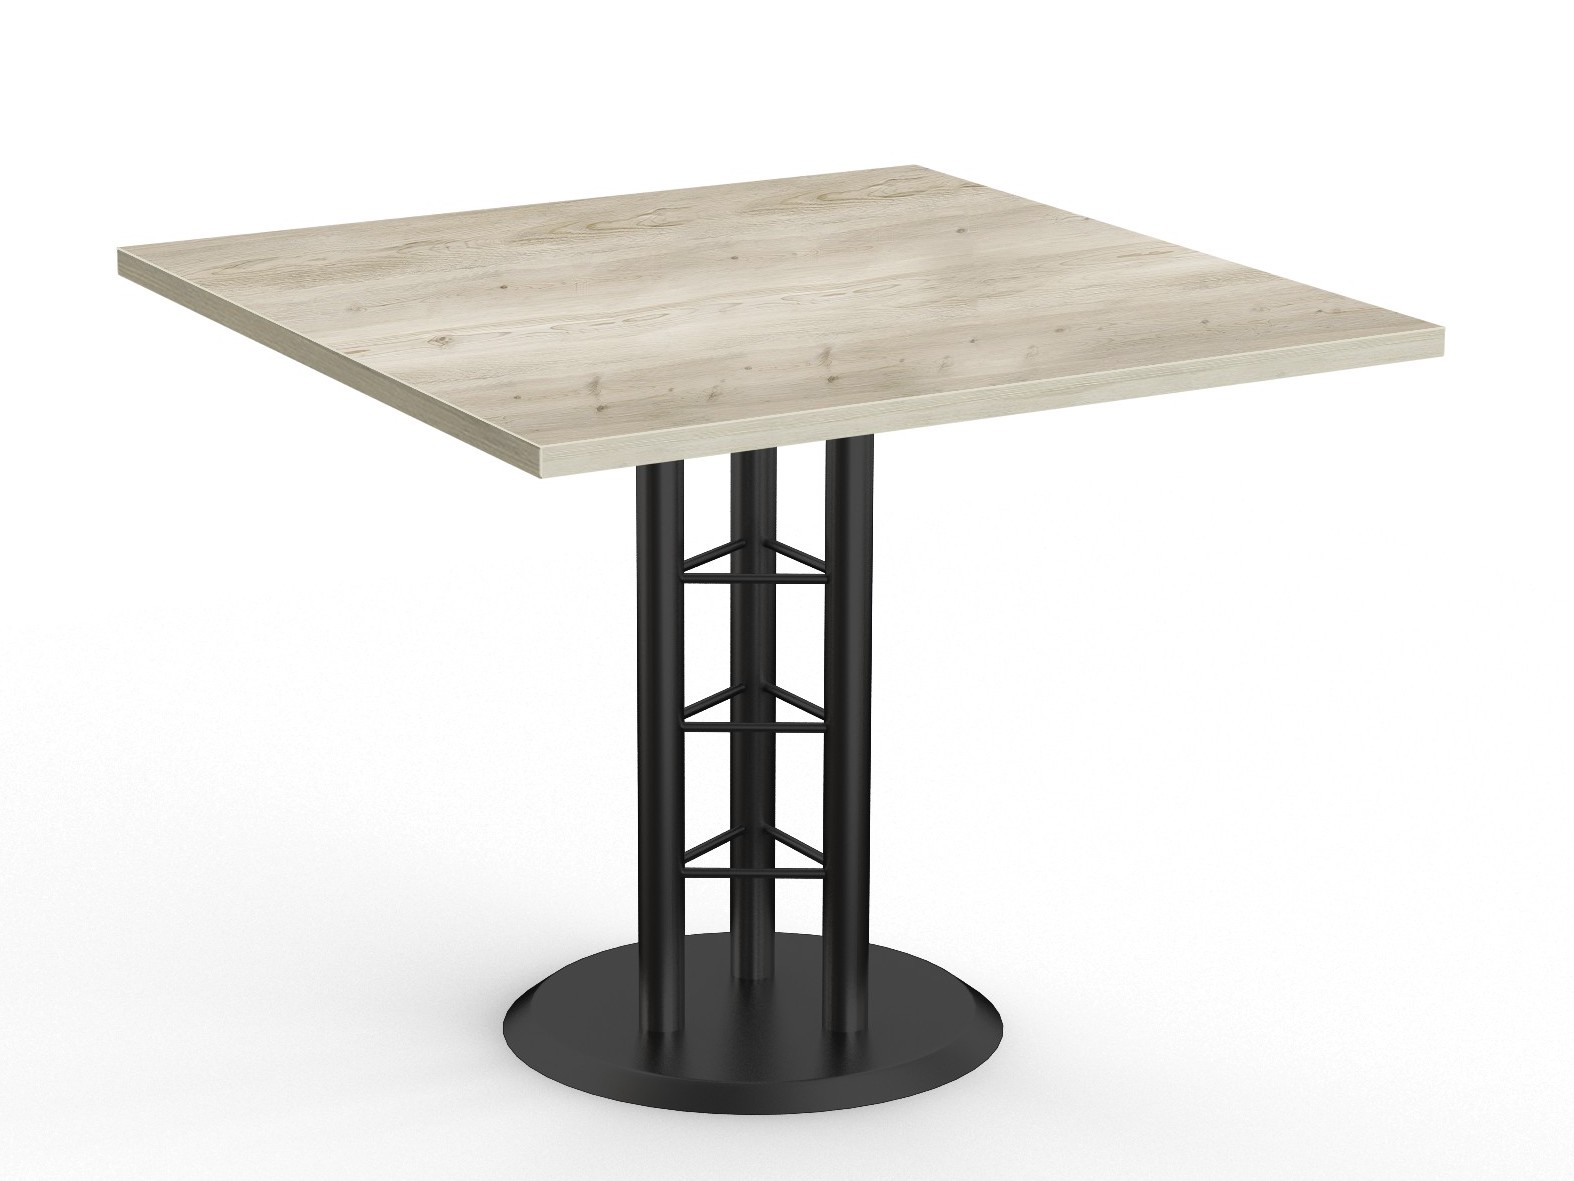 special-t success table in aged driftwood